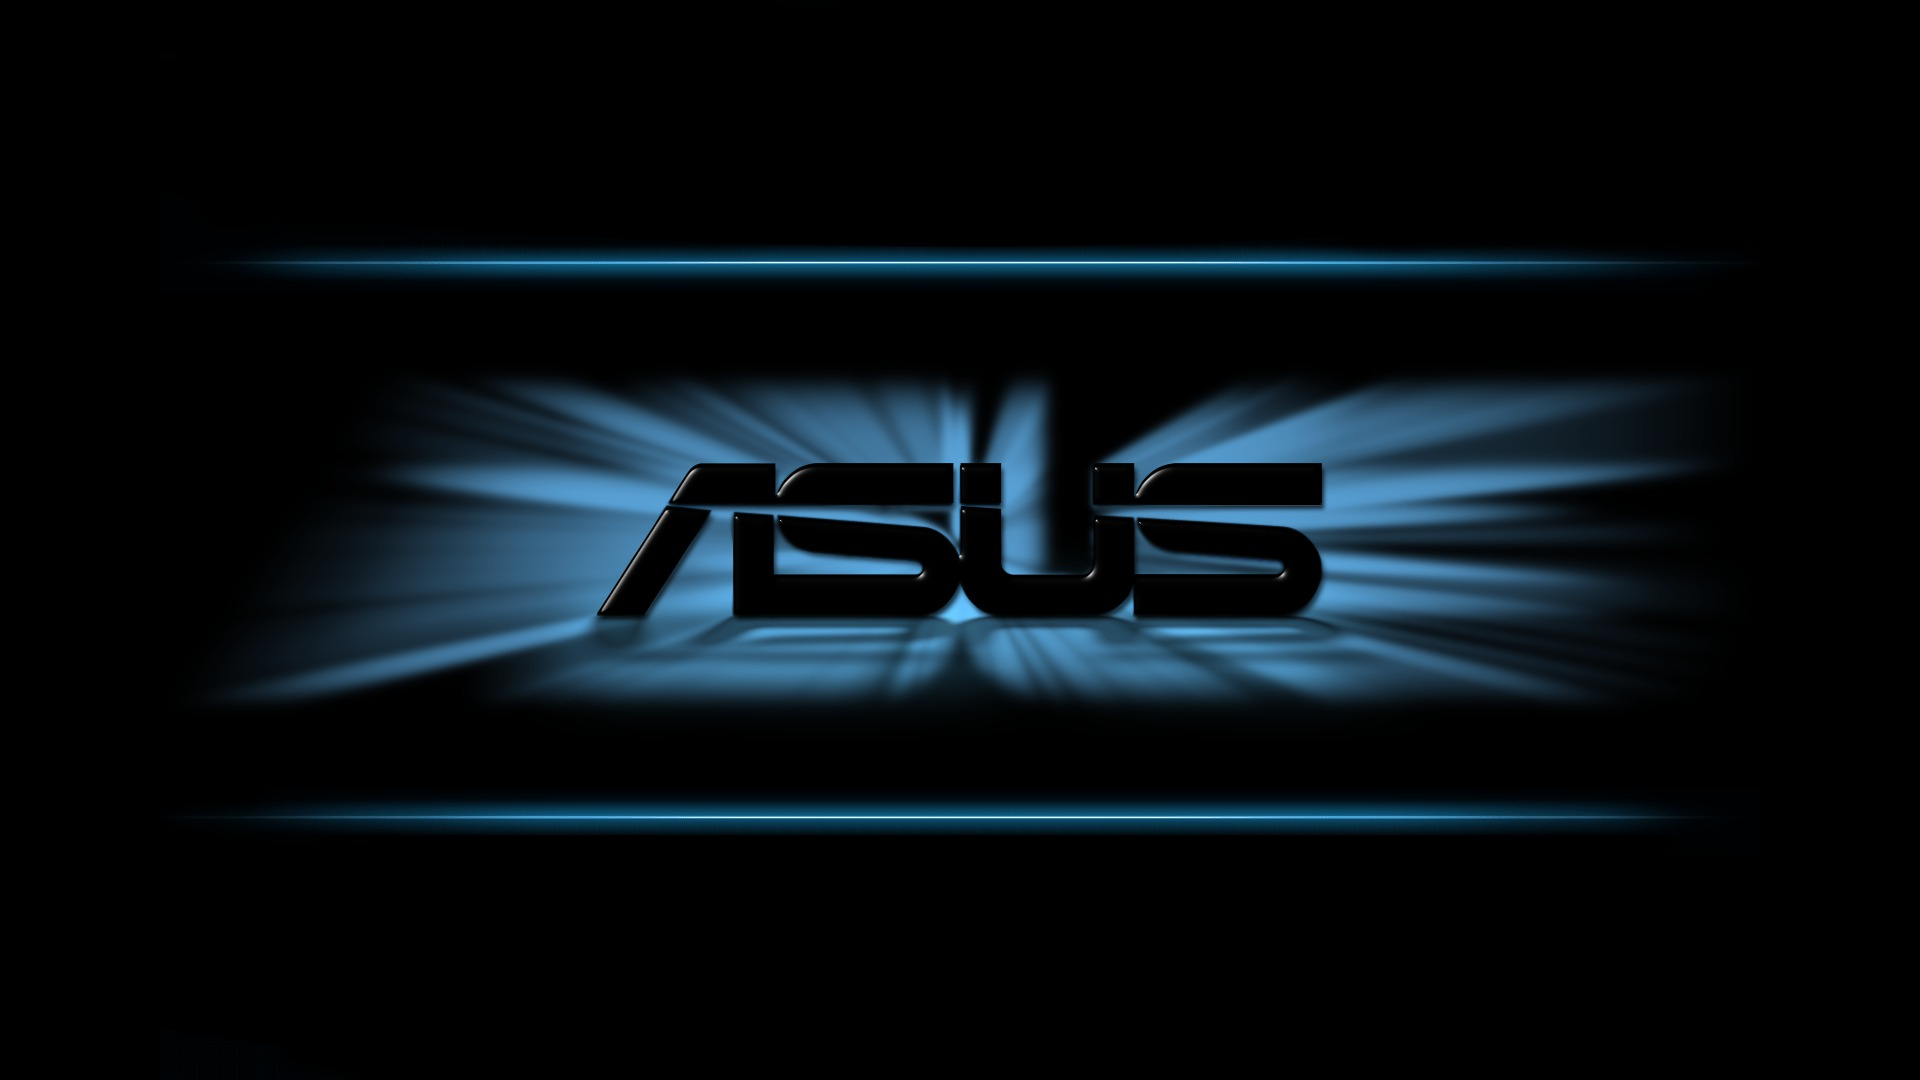 Via PR PC And Tablet Manufacturer Asus Has Recorded A Year Over Growth As It Continues To Strengthen Its Local Regional Market Share